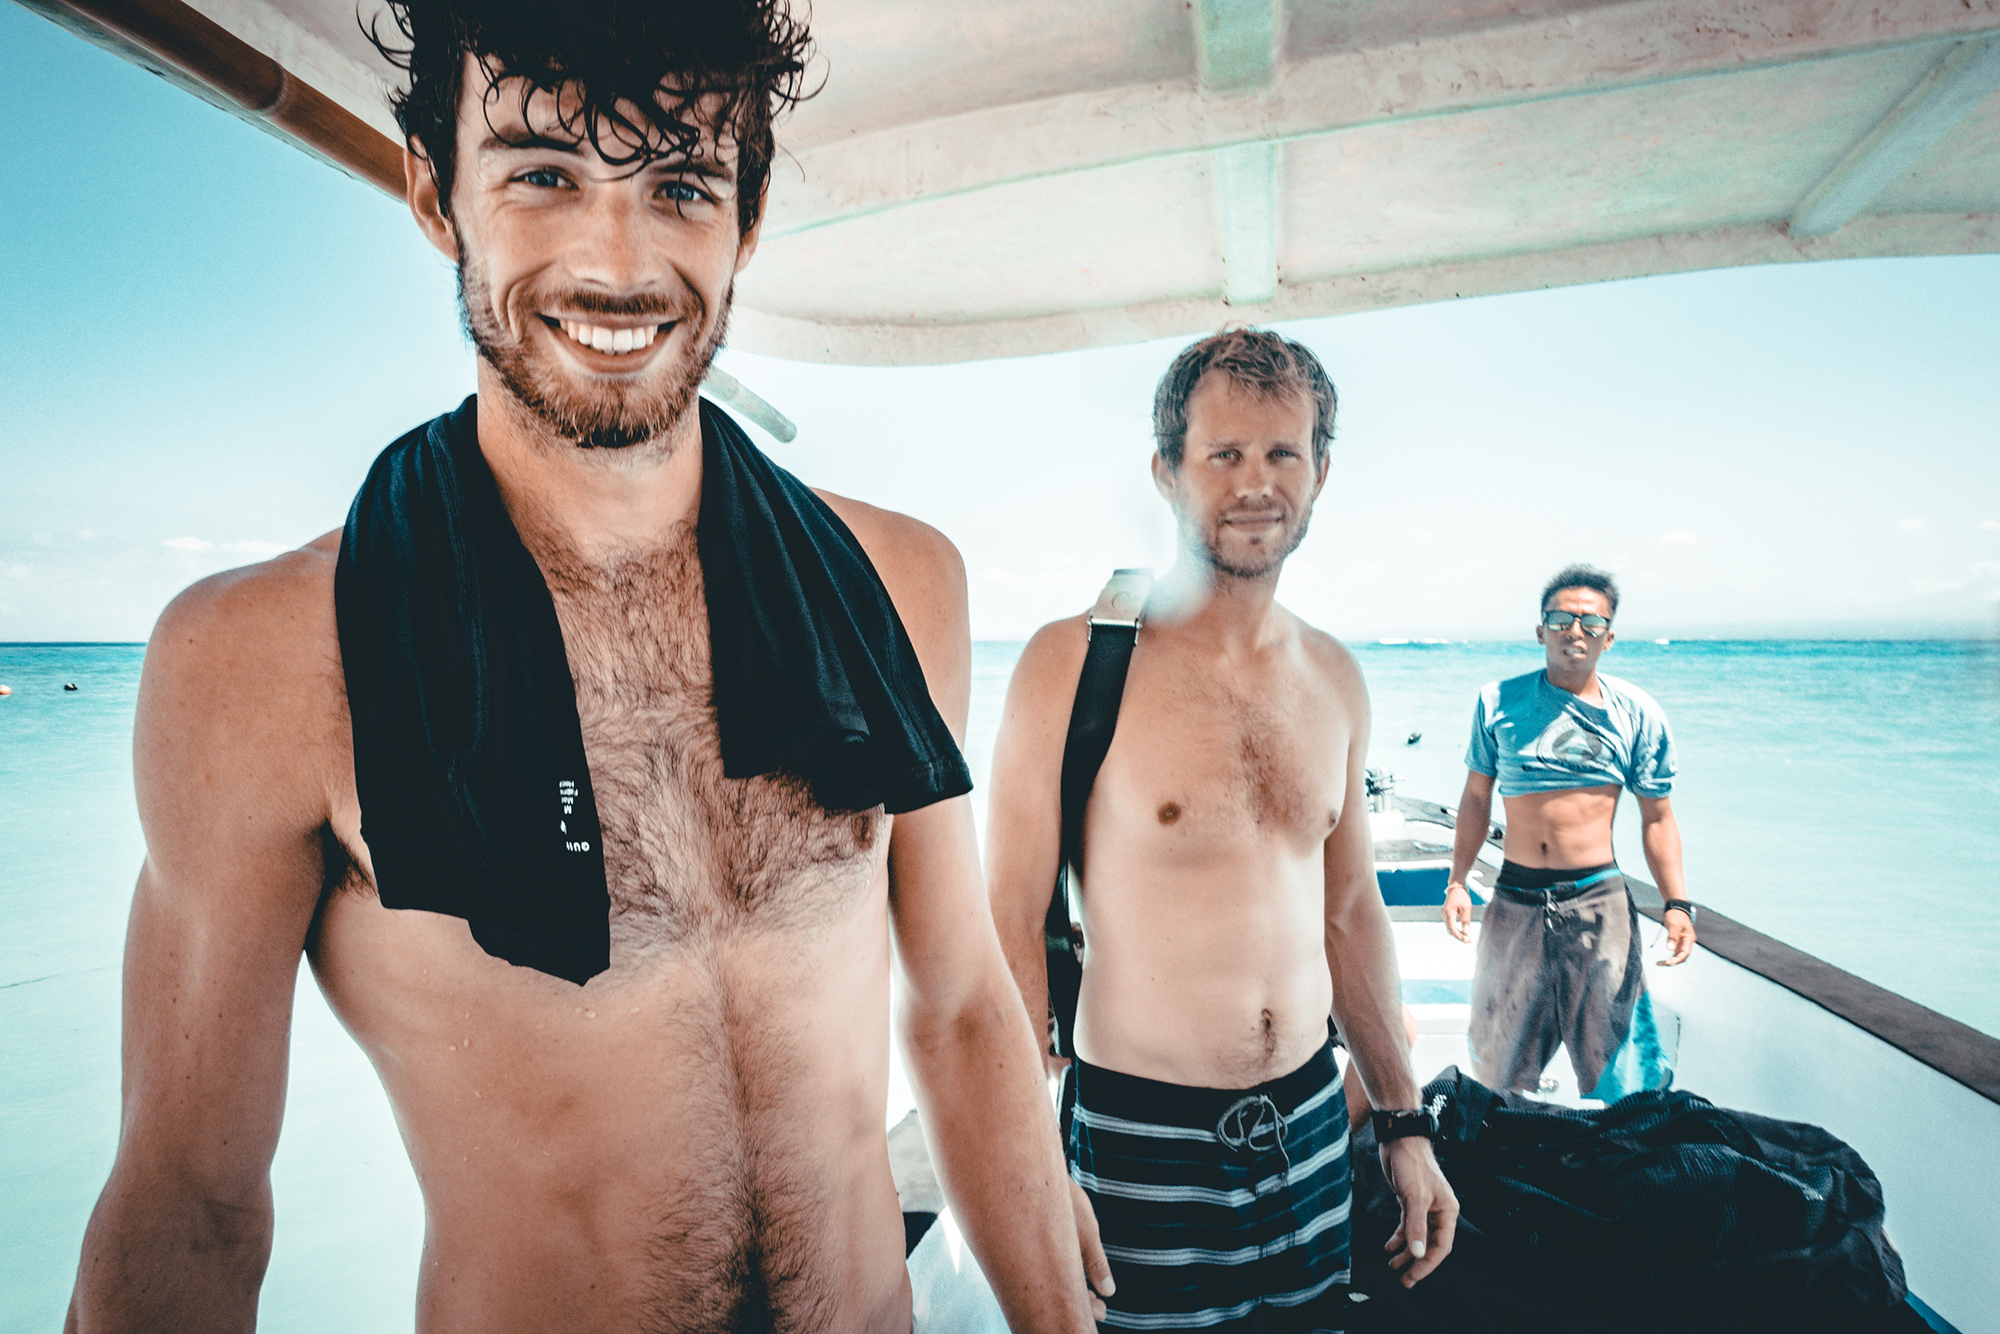 190407_MR-FREEDIVE-Tino-Ben-Mike-Marie-small_DSC06122.png